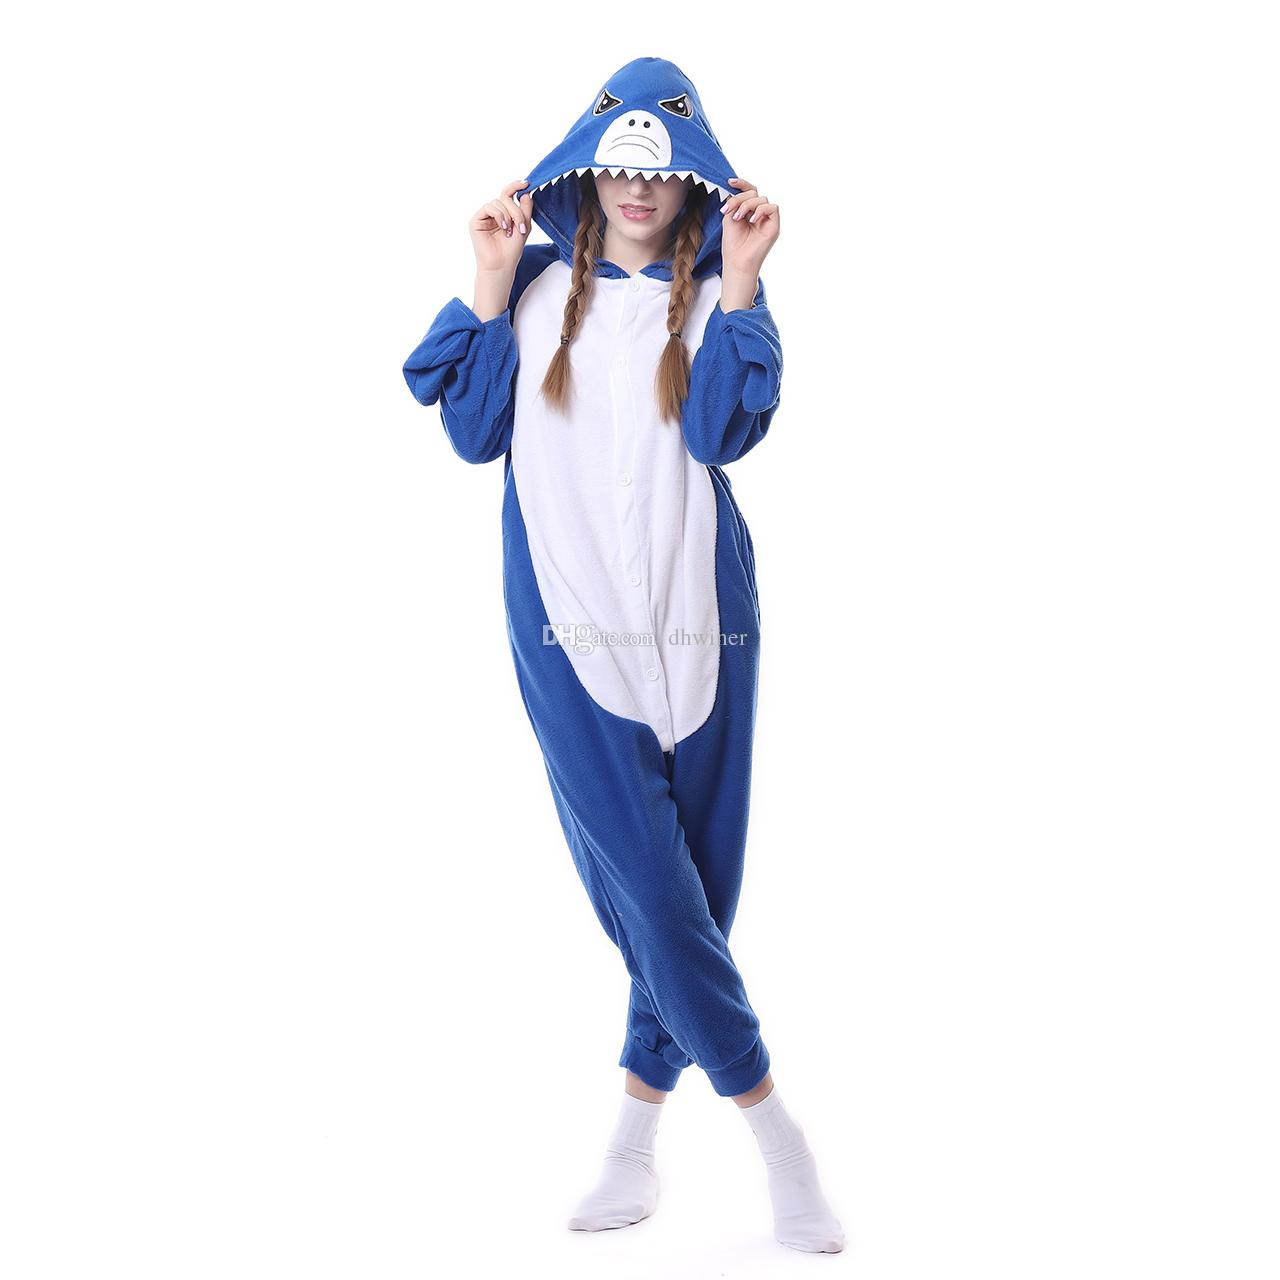 ffa4644a9cd6 Unisex Adult OnePiece Onesie Cosplay Costumes Kigurumi Animal Outfit  Loungewear Shark Superman Costume Halloween Costumes For Couples From  Dhwiner